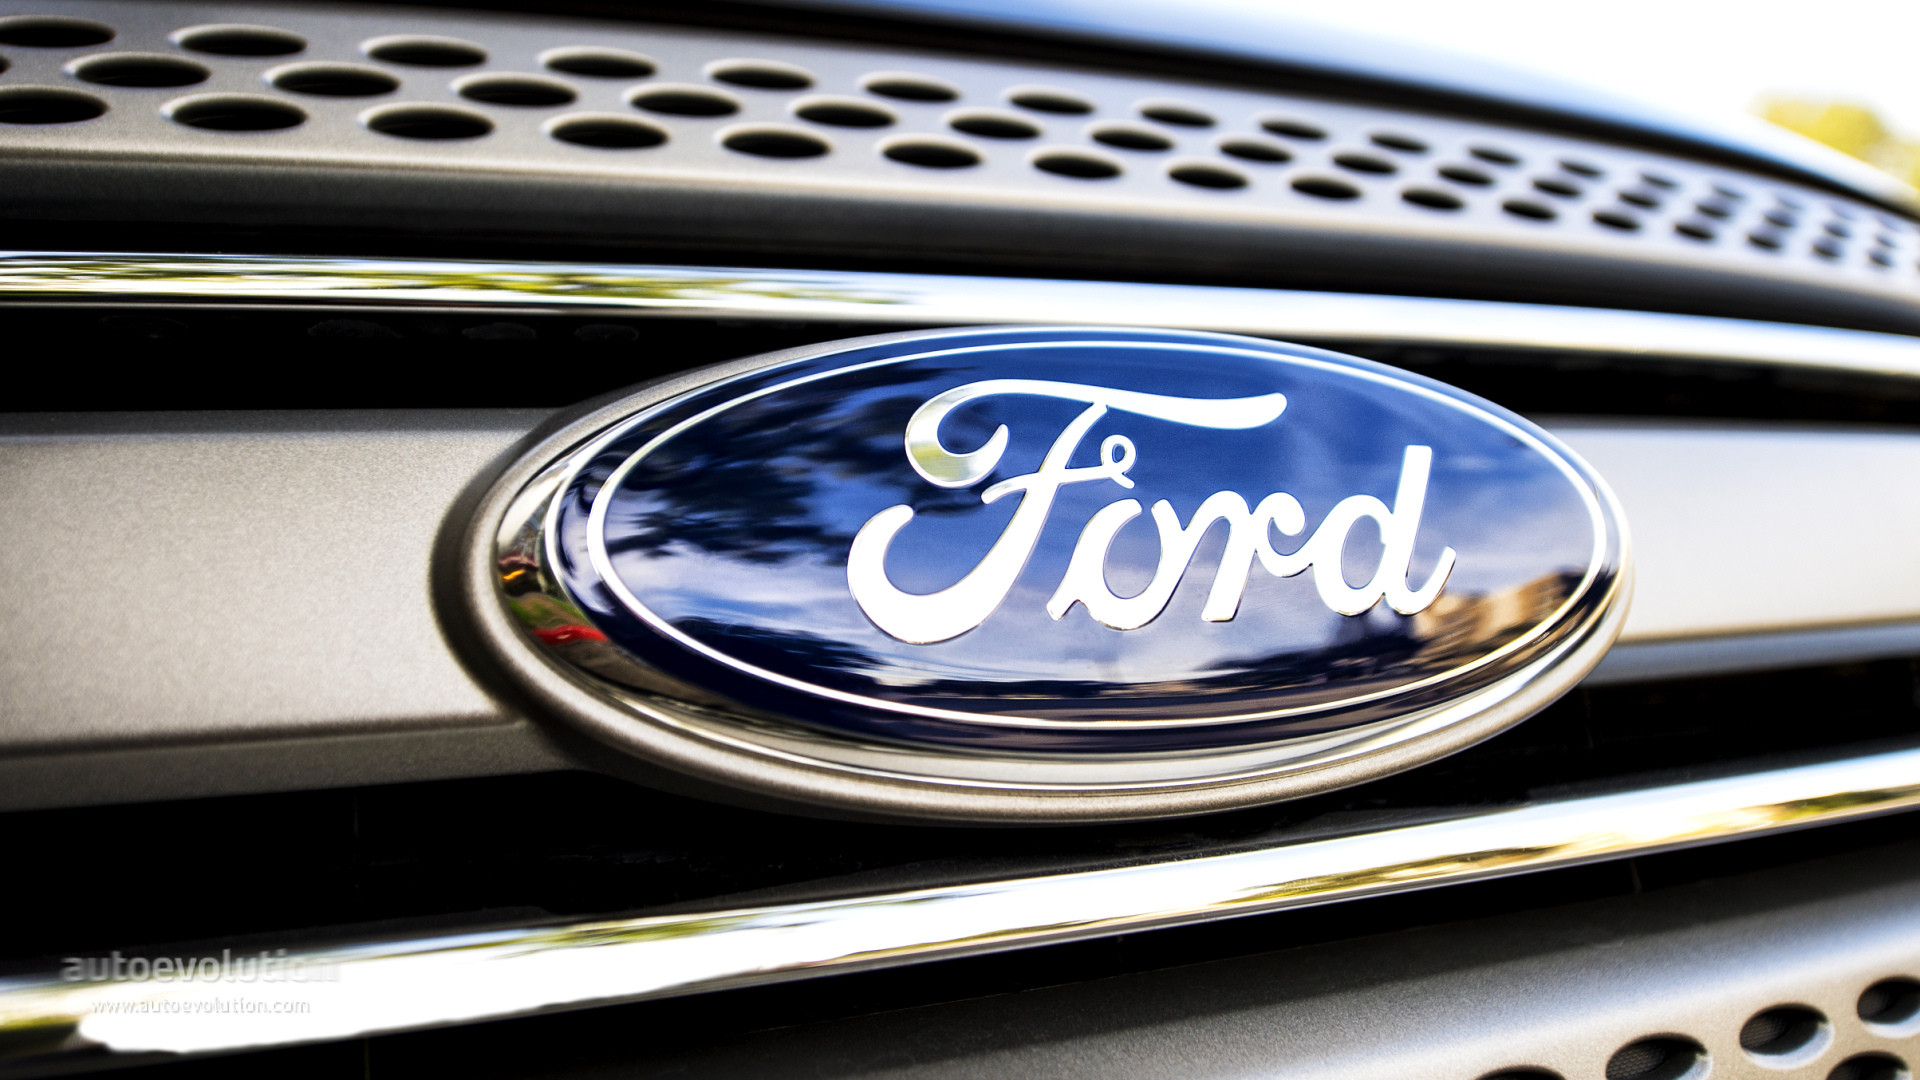 … ford wallpaper